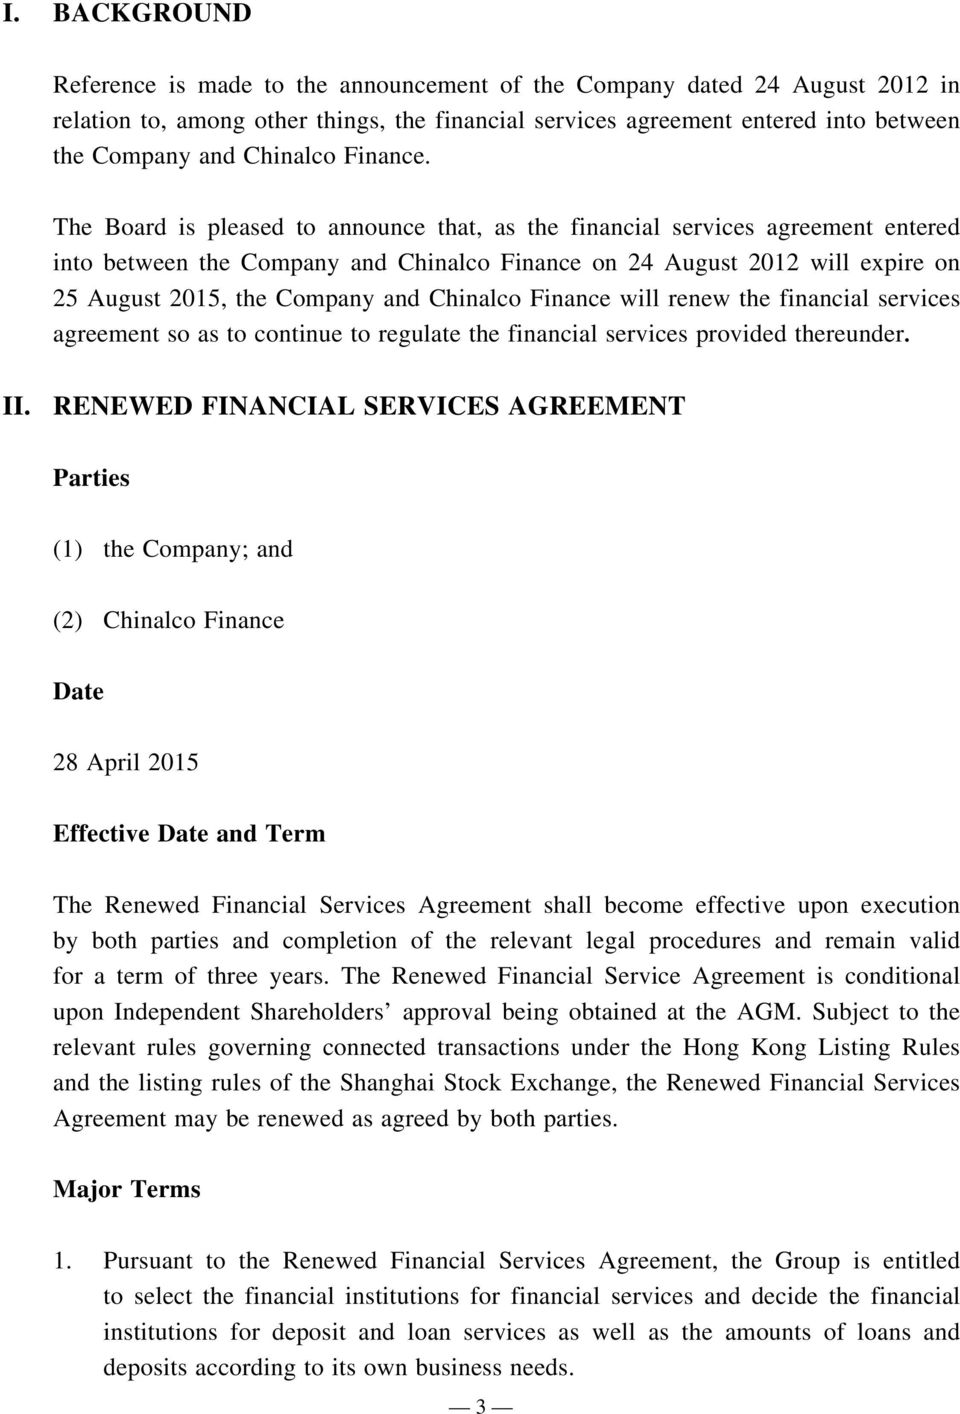 The Board is pleased to announce that, as the financial services agreement entered into between the Company and Chinalco Finance on 24 August 2012 will expire on 25 August 2015, the Company and